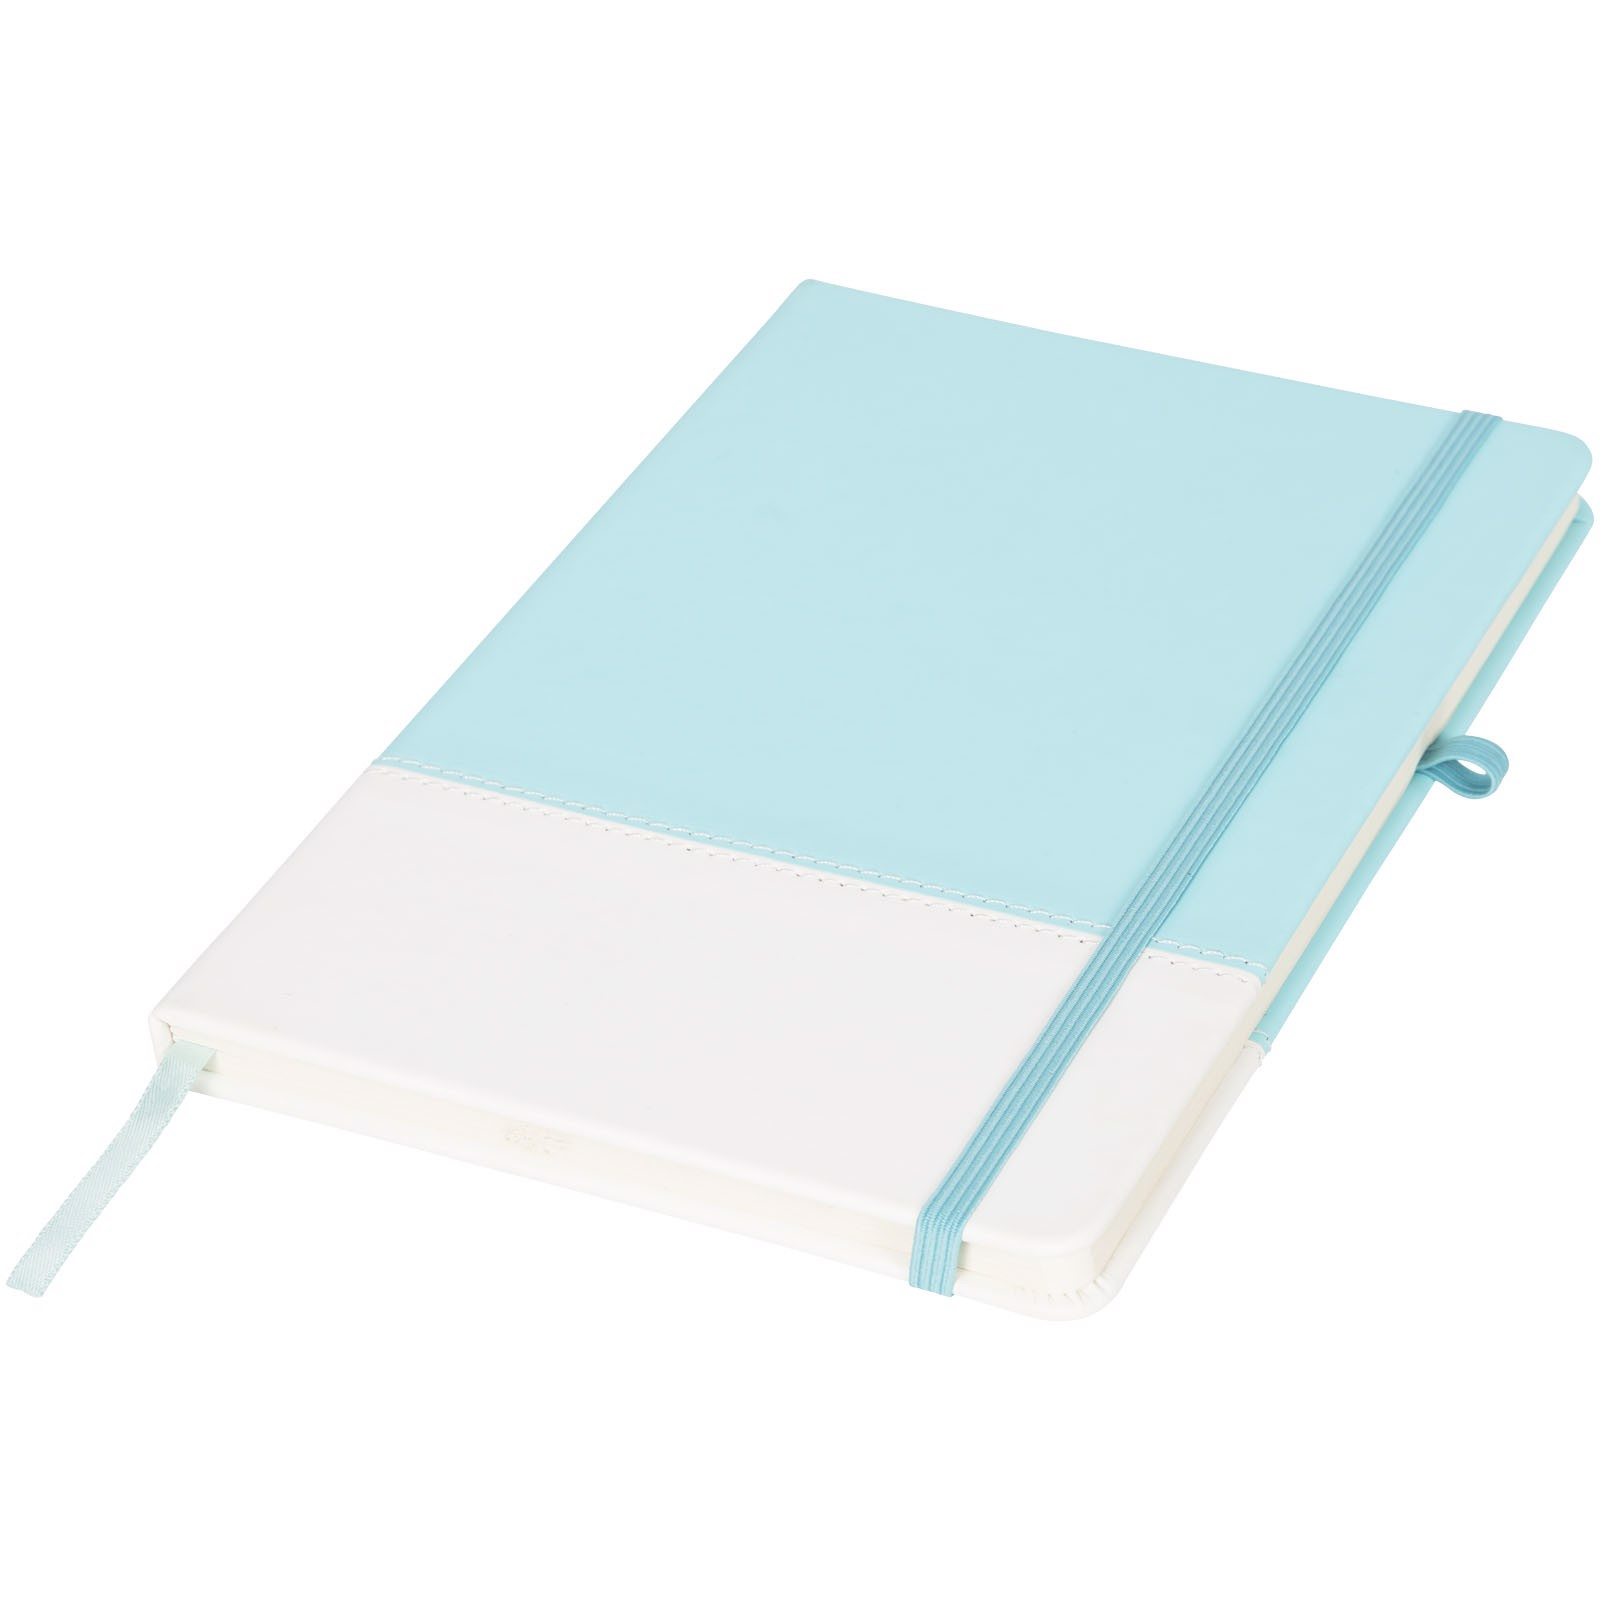 Two-tone A5 colour block notebook - Mint